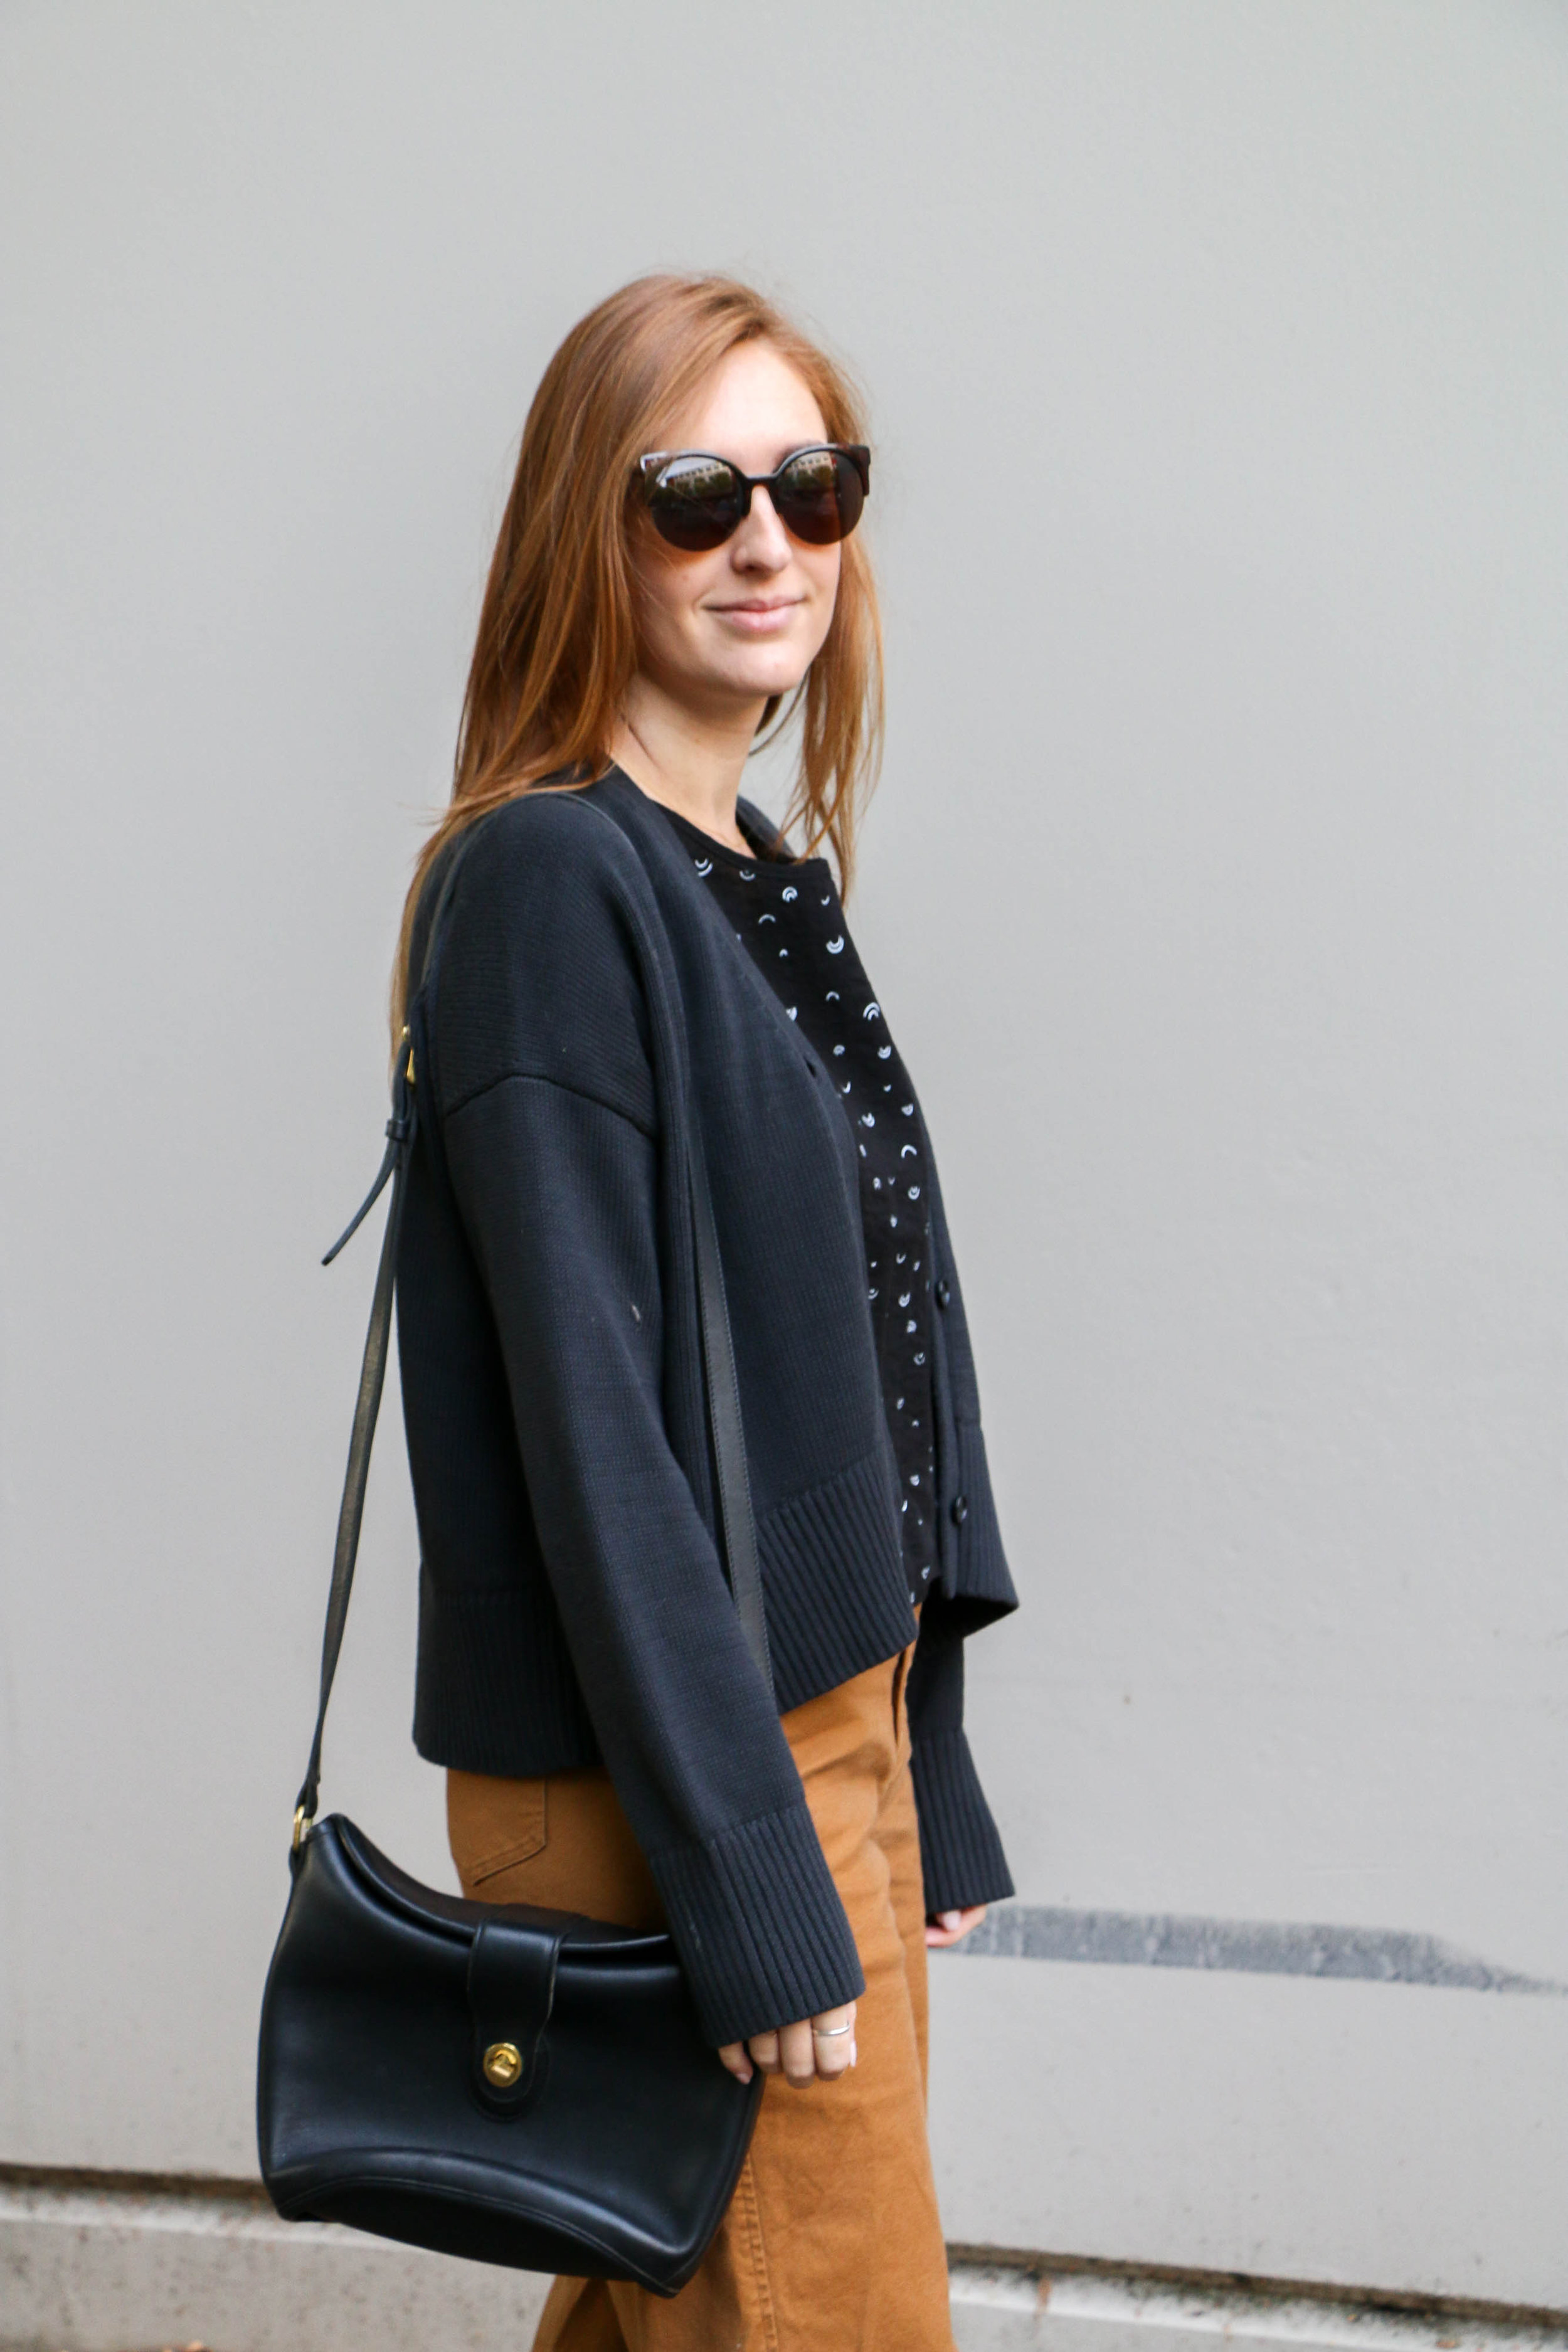 the-thoughtful-closet_fall-10x10_challenge_outfit-3_-3.jpg